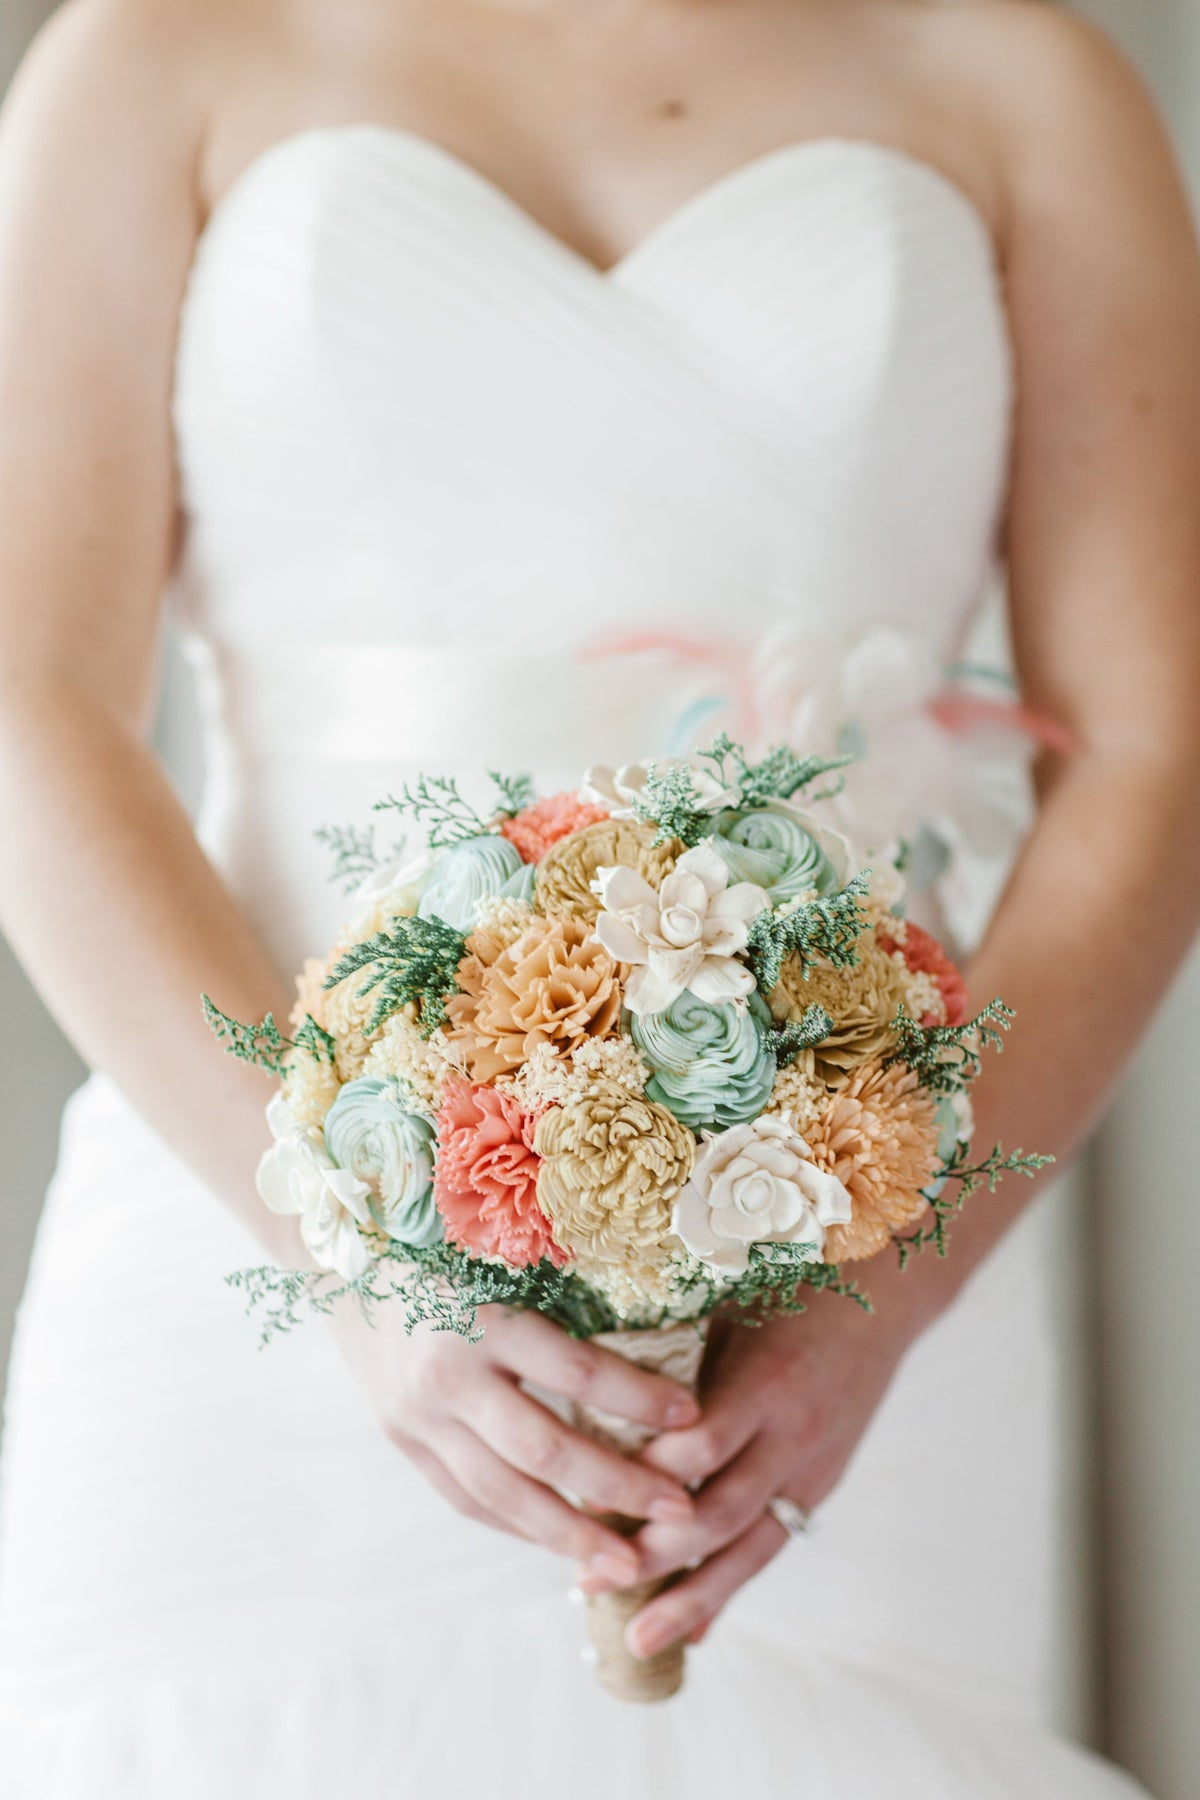 Bridal Bouquet - Sola Wood Flowers, Faux Flowers, Wedding Flowers, Peach, Coral, Mint